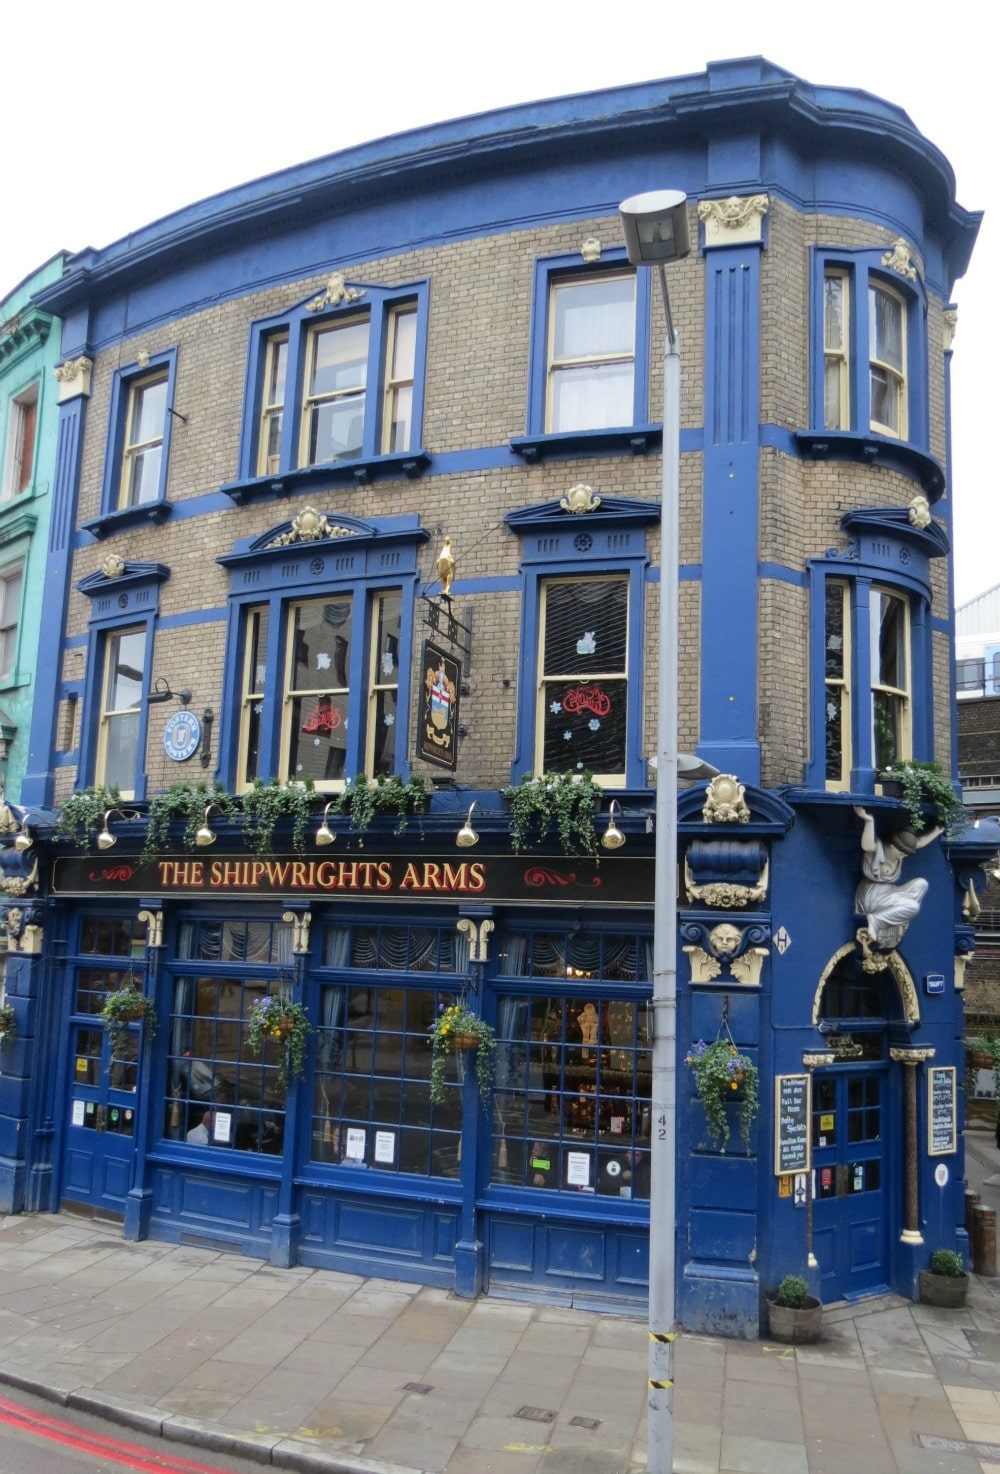 Baby Boomer Travel | England | The Shipwright's Arms Pub